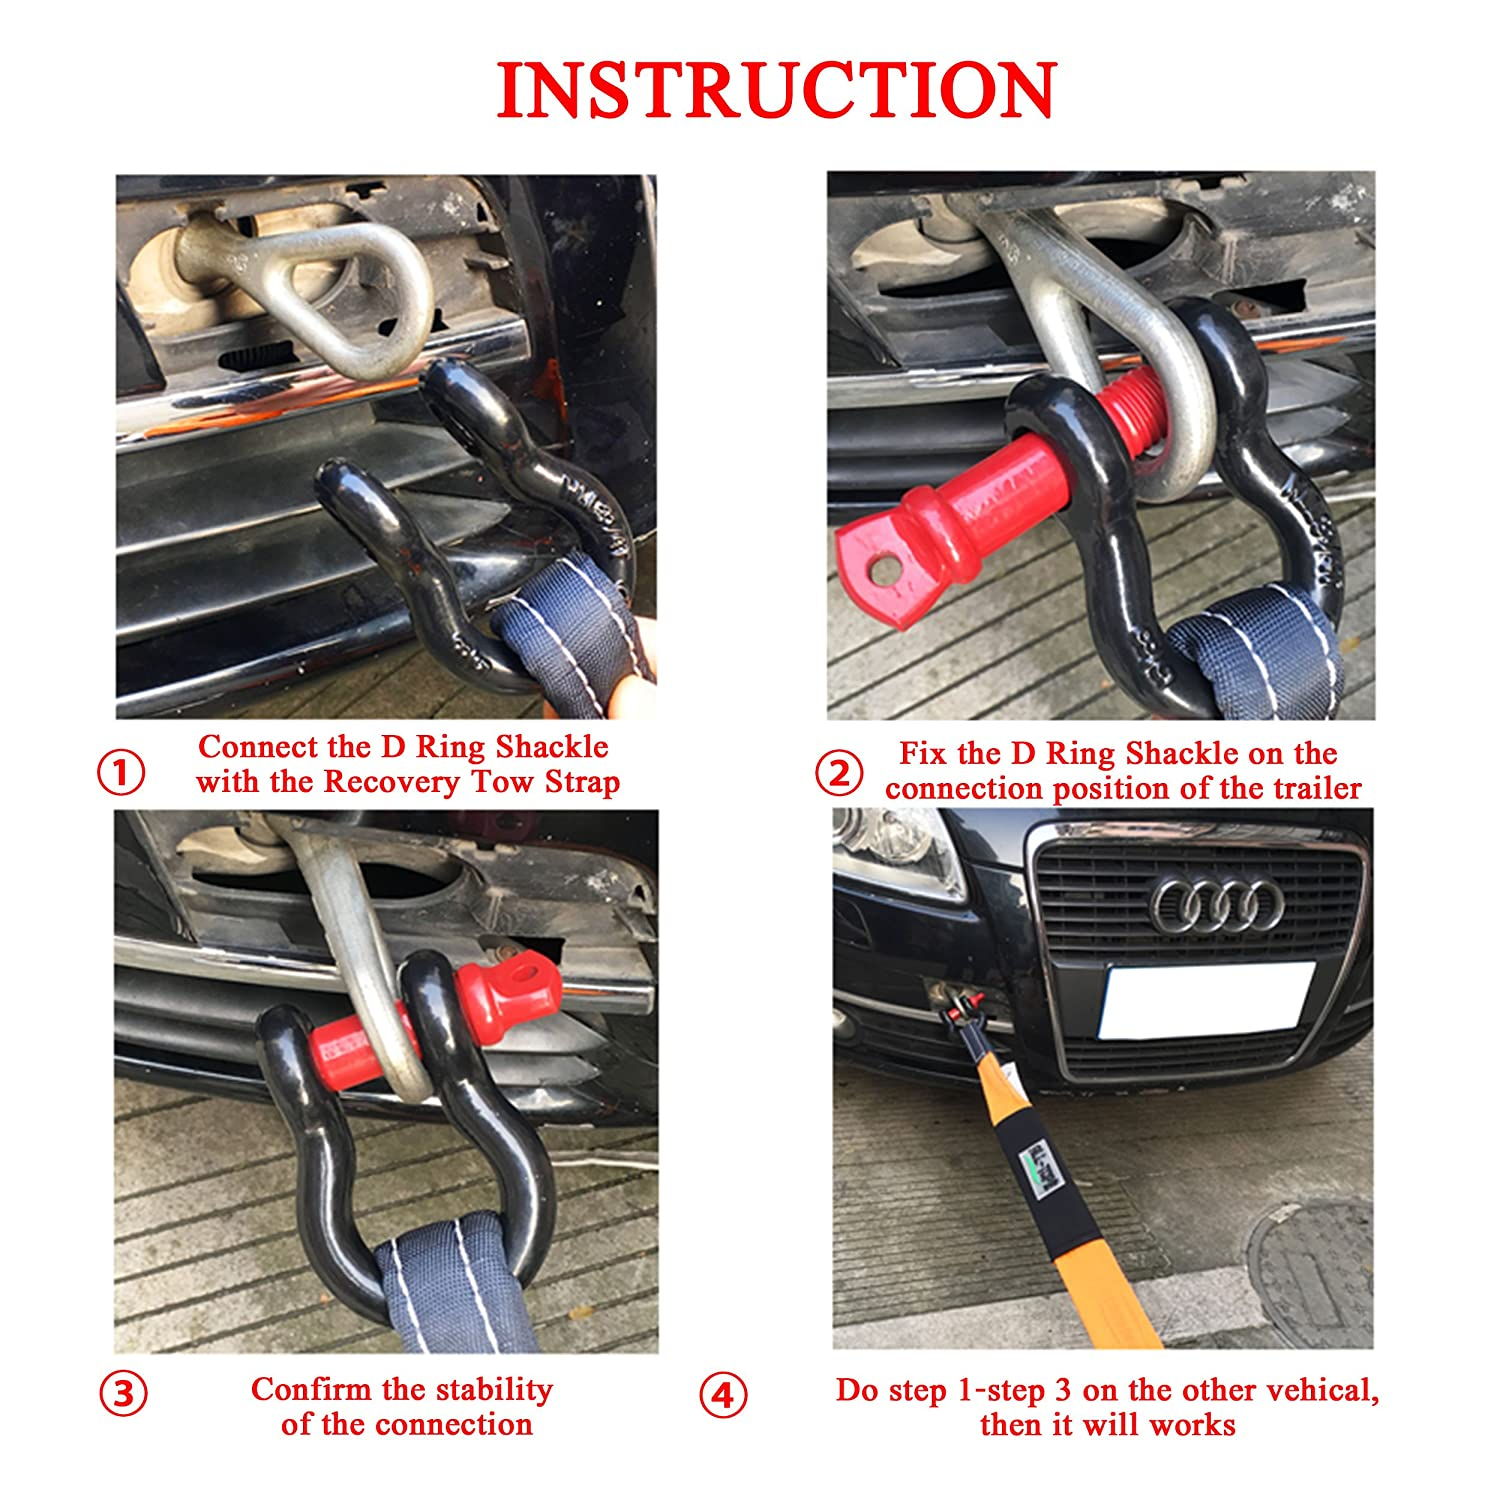 Breaking Strength For Vehicle Recovery,Tow Strap Hooks 42,990 lbs iztor 5//8 D Ring bow Shackle Isolator 2 Pk Unbreakable 19.5 Tons